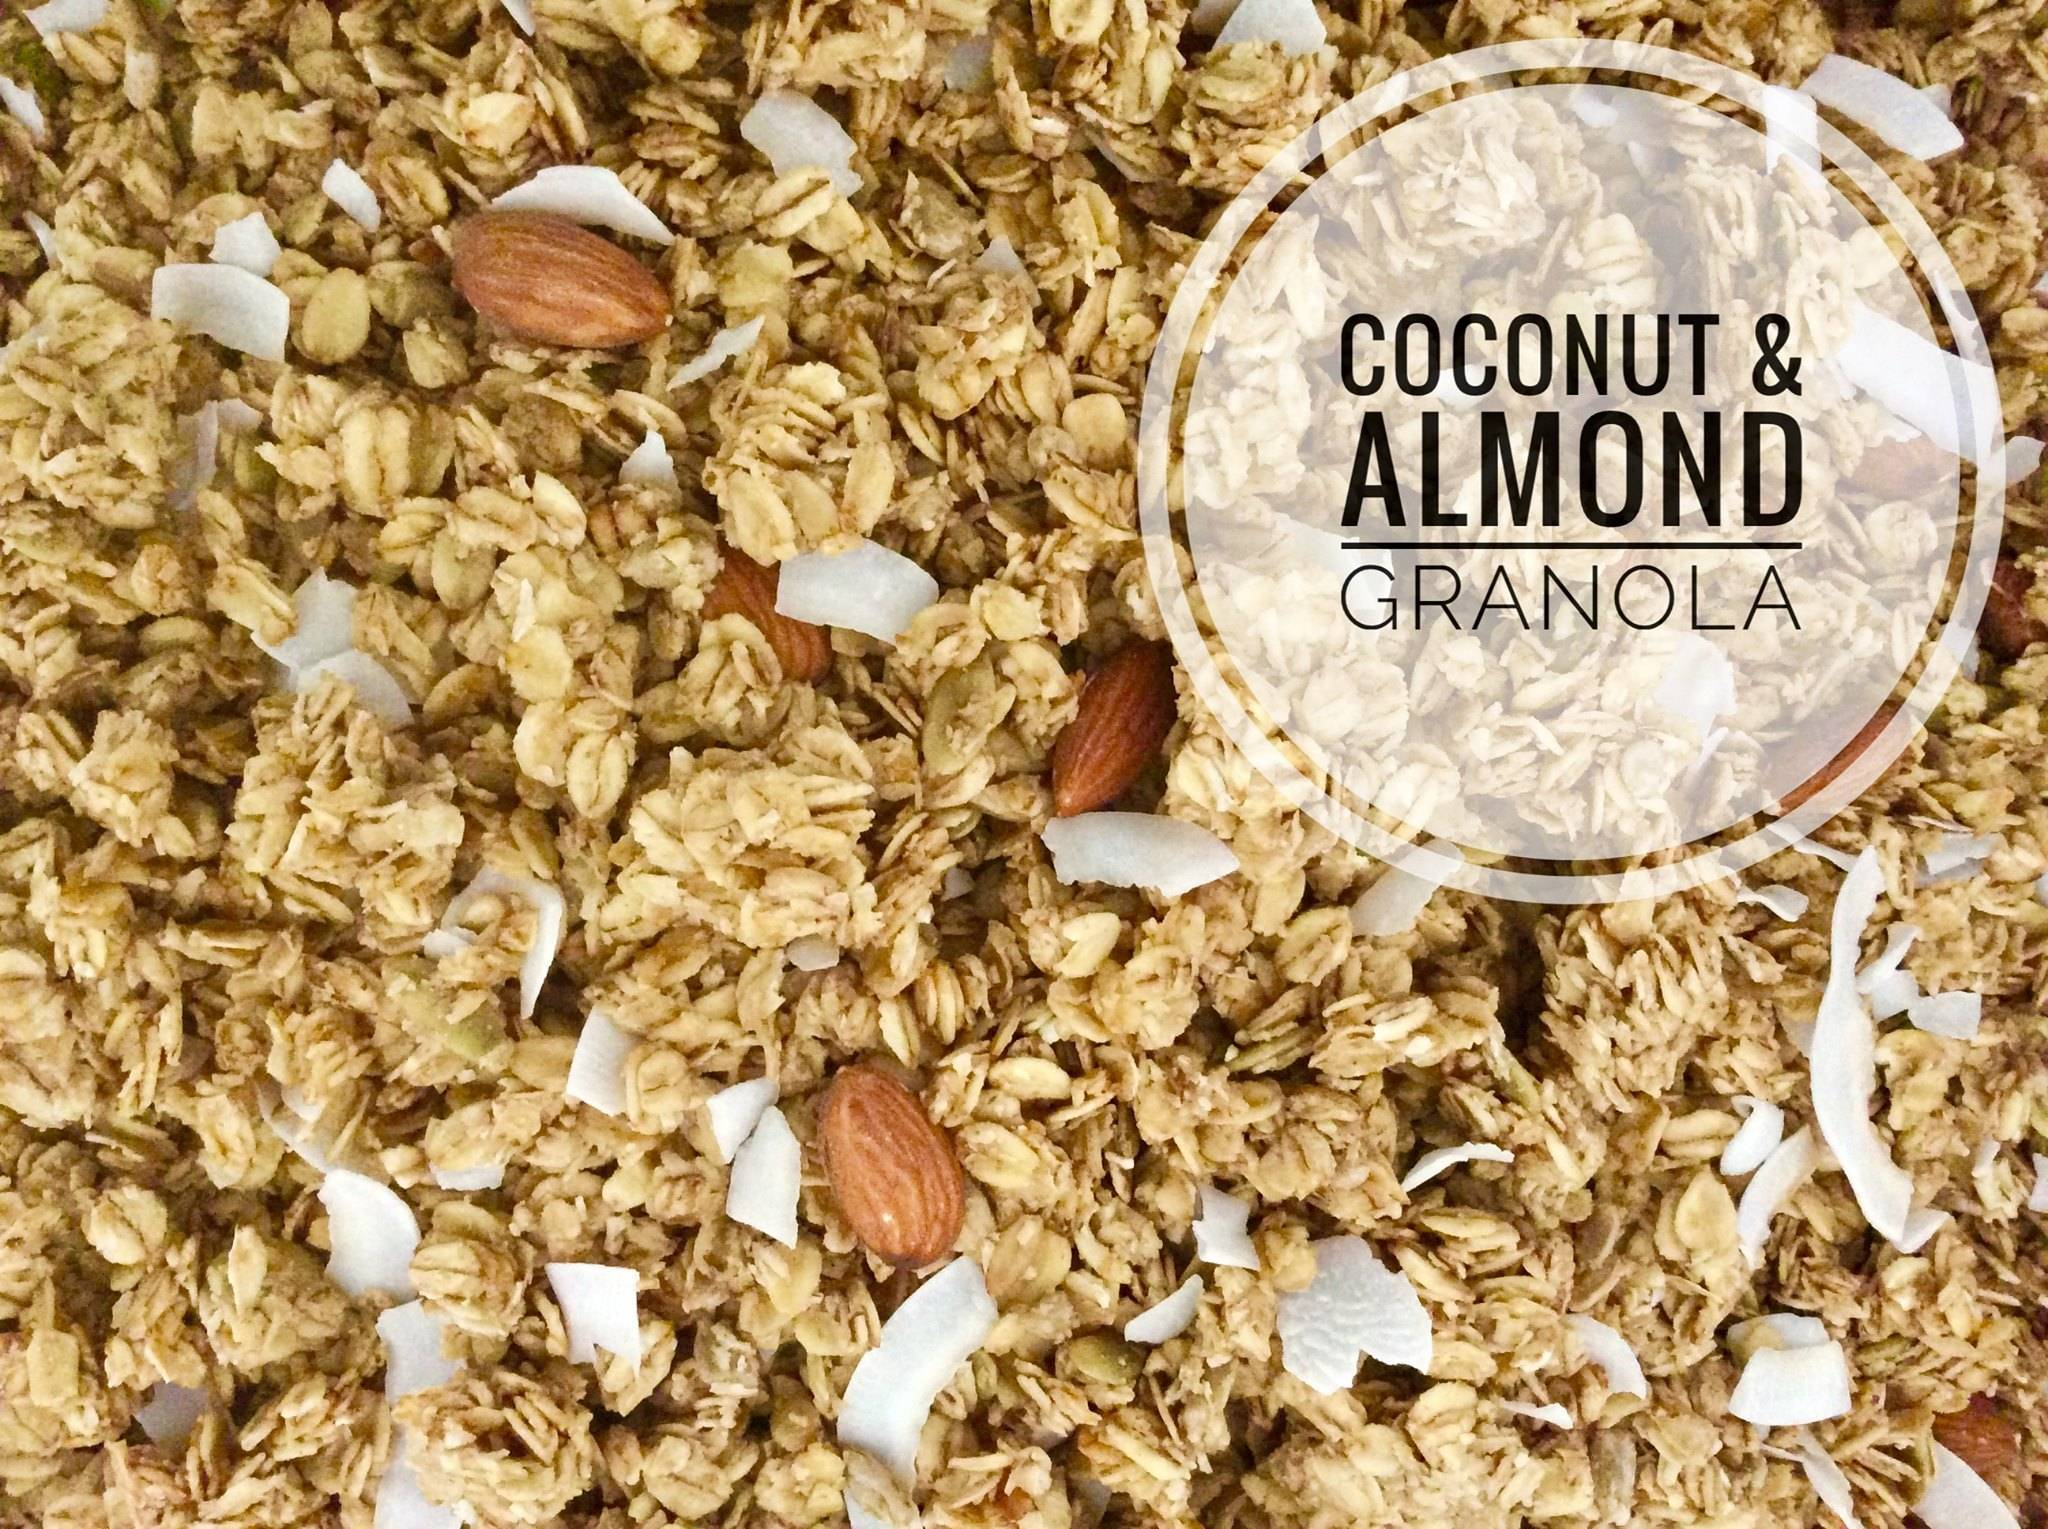 Green's Coconut & Almond Granola